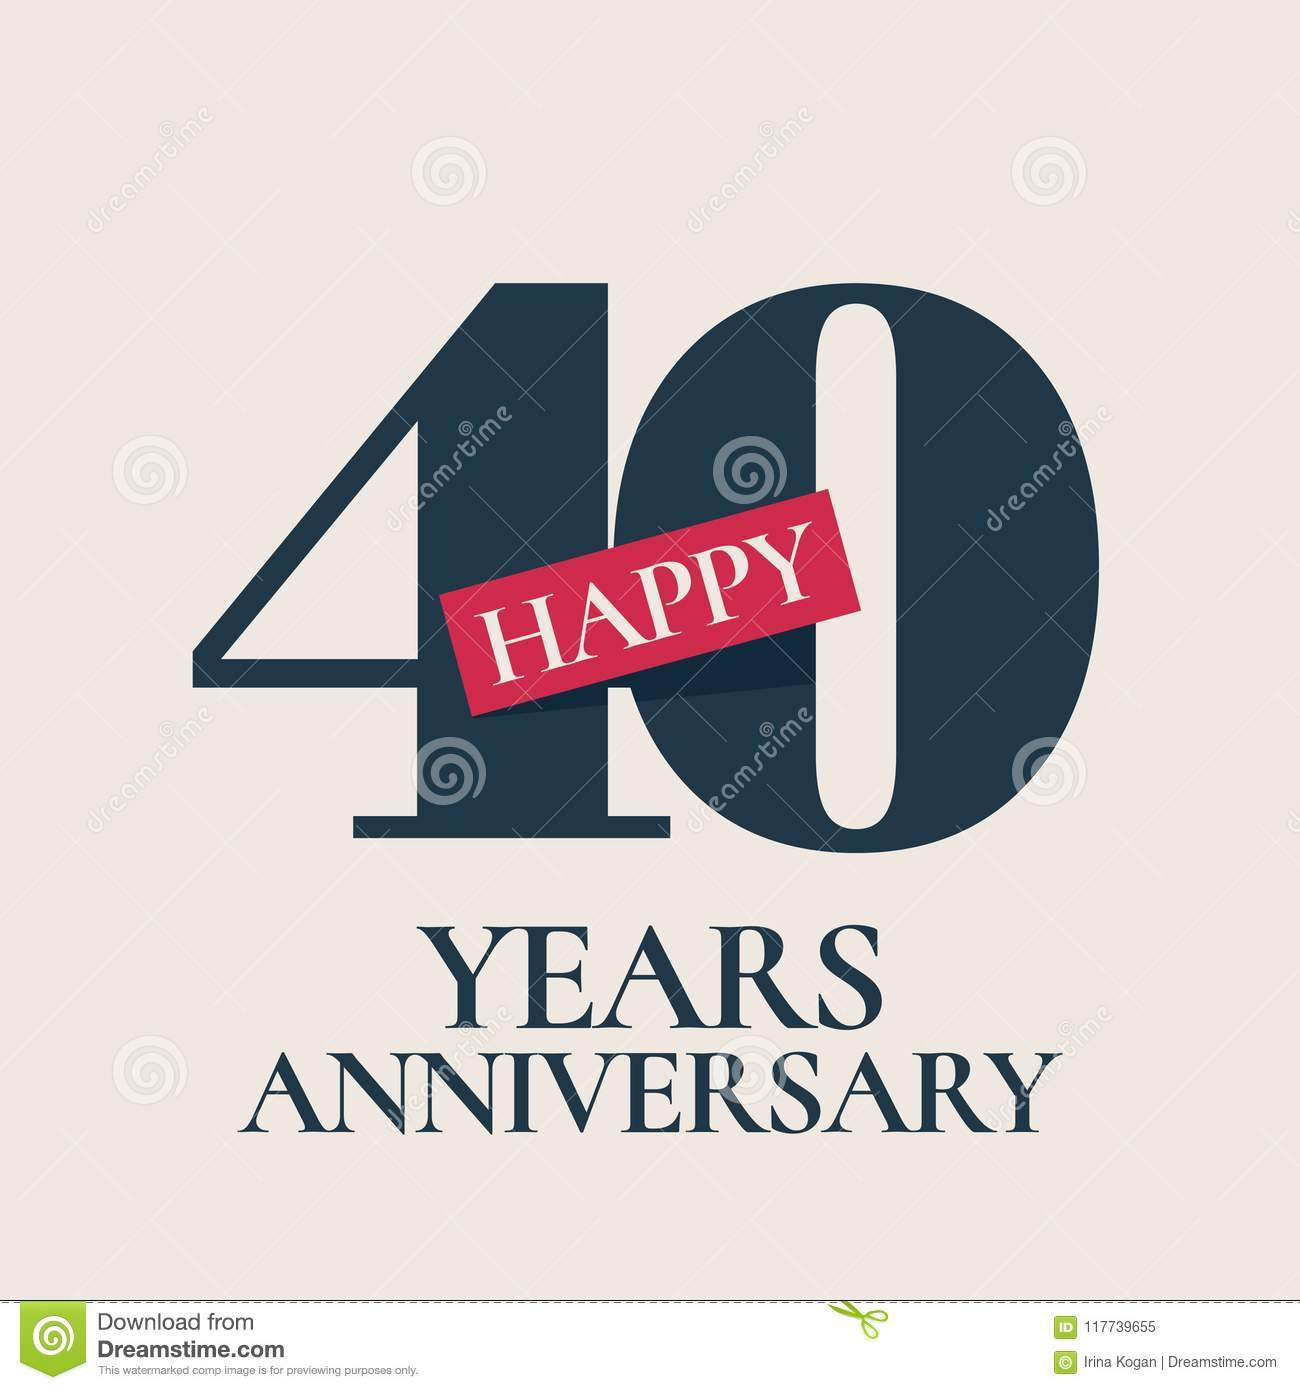 40 years anniversary vector logo icon stock vector illustration